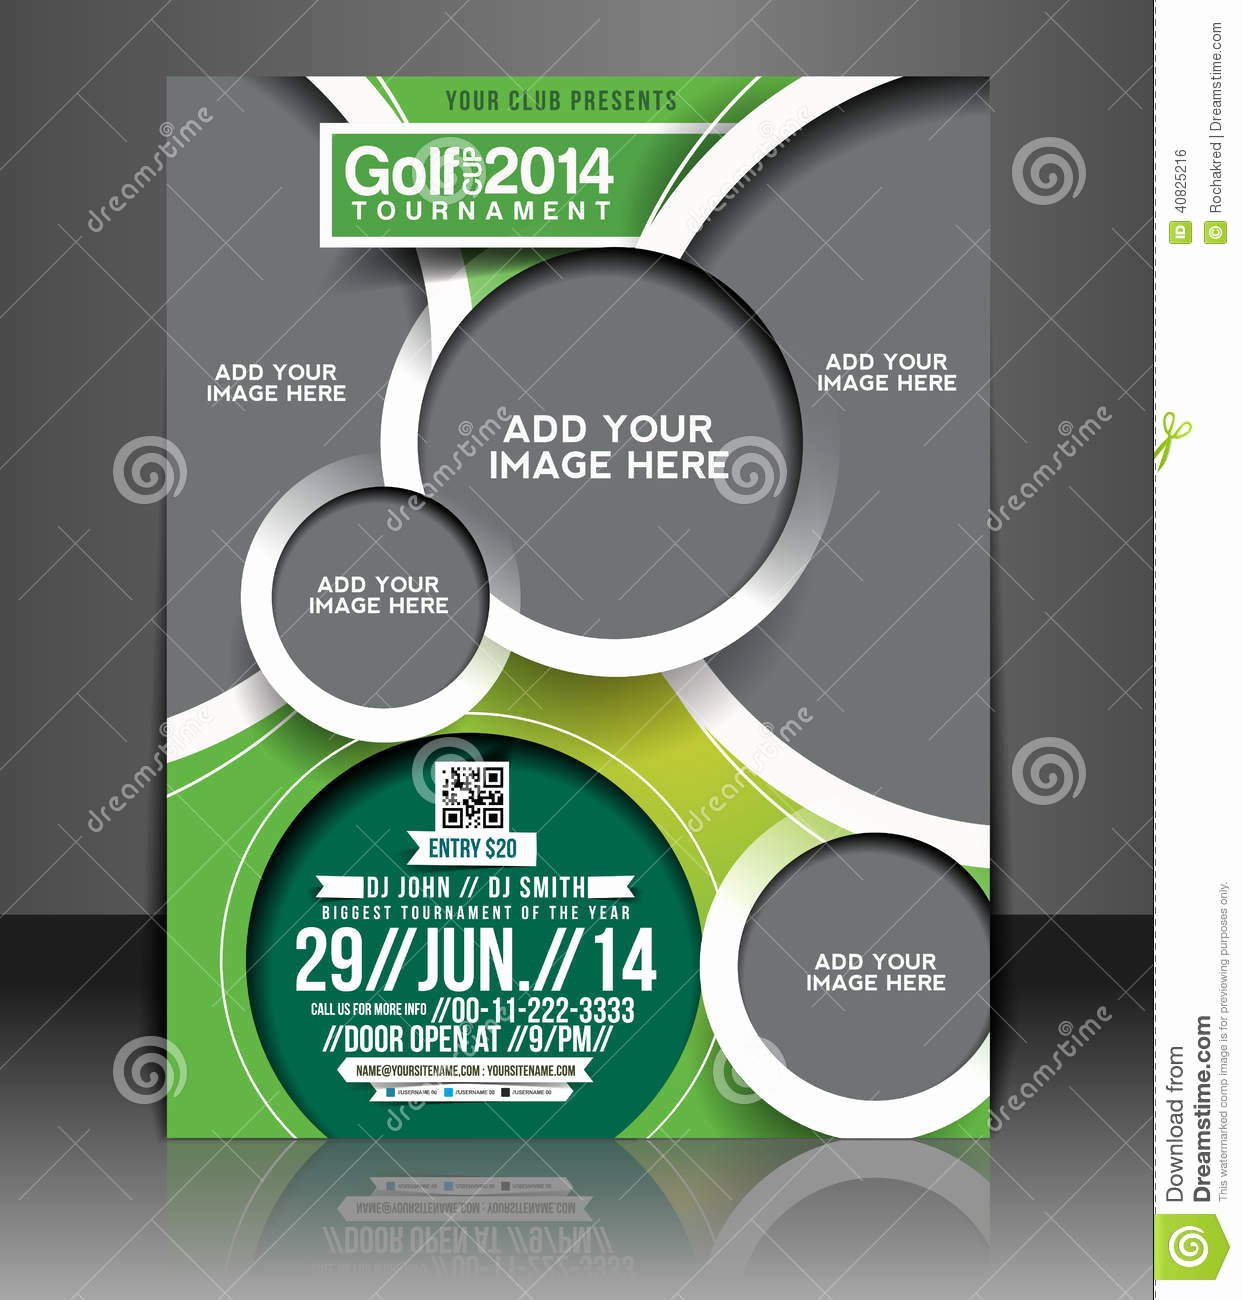 Golf Tee Game Template Lovely Golf tournament Flyer Design Stock Vector Image